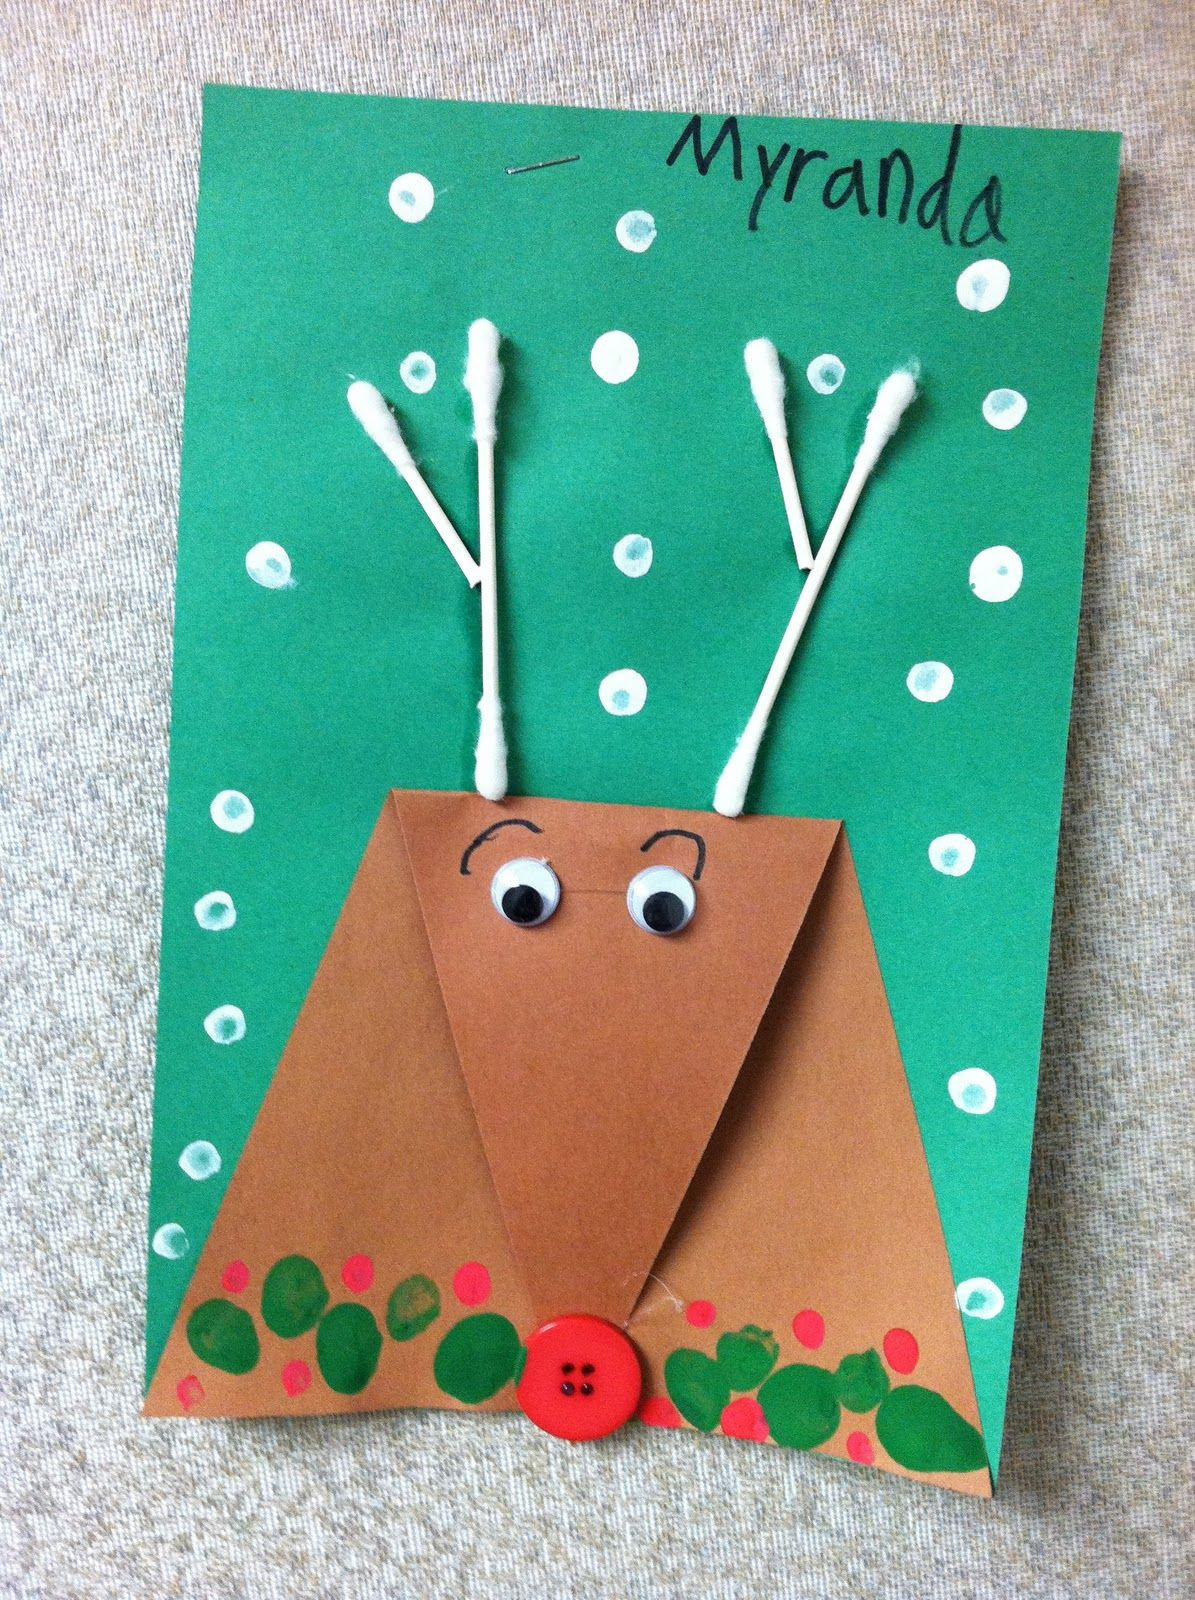 Art And Craft Ideas For Making Greeting Cards Part - 22: Perfect Christmas Reindeer Craft For Kindergarten Perfect Craft! ArtZ  KiddoZ - Triangle Collage Reindeer Card Or Picture. Great Activity To Do  With Little ...